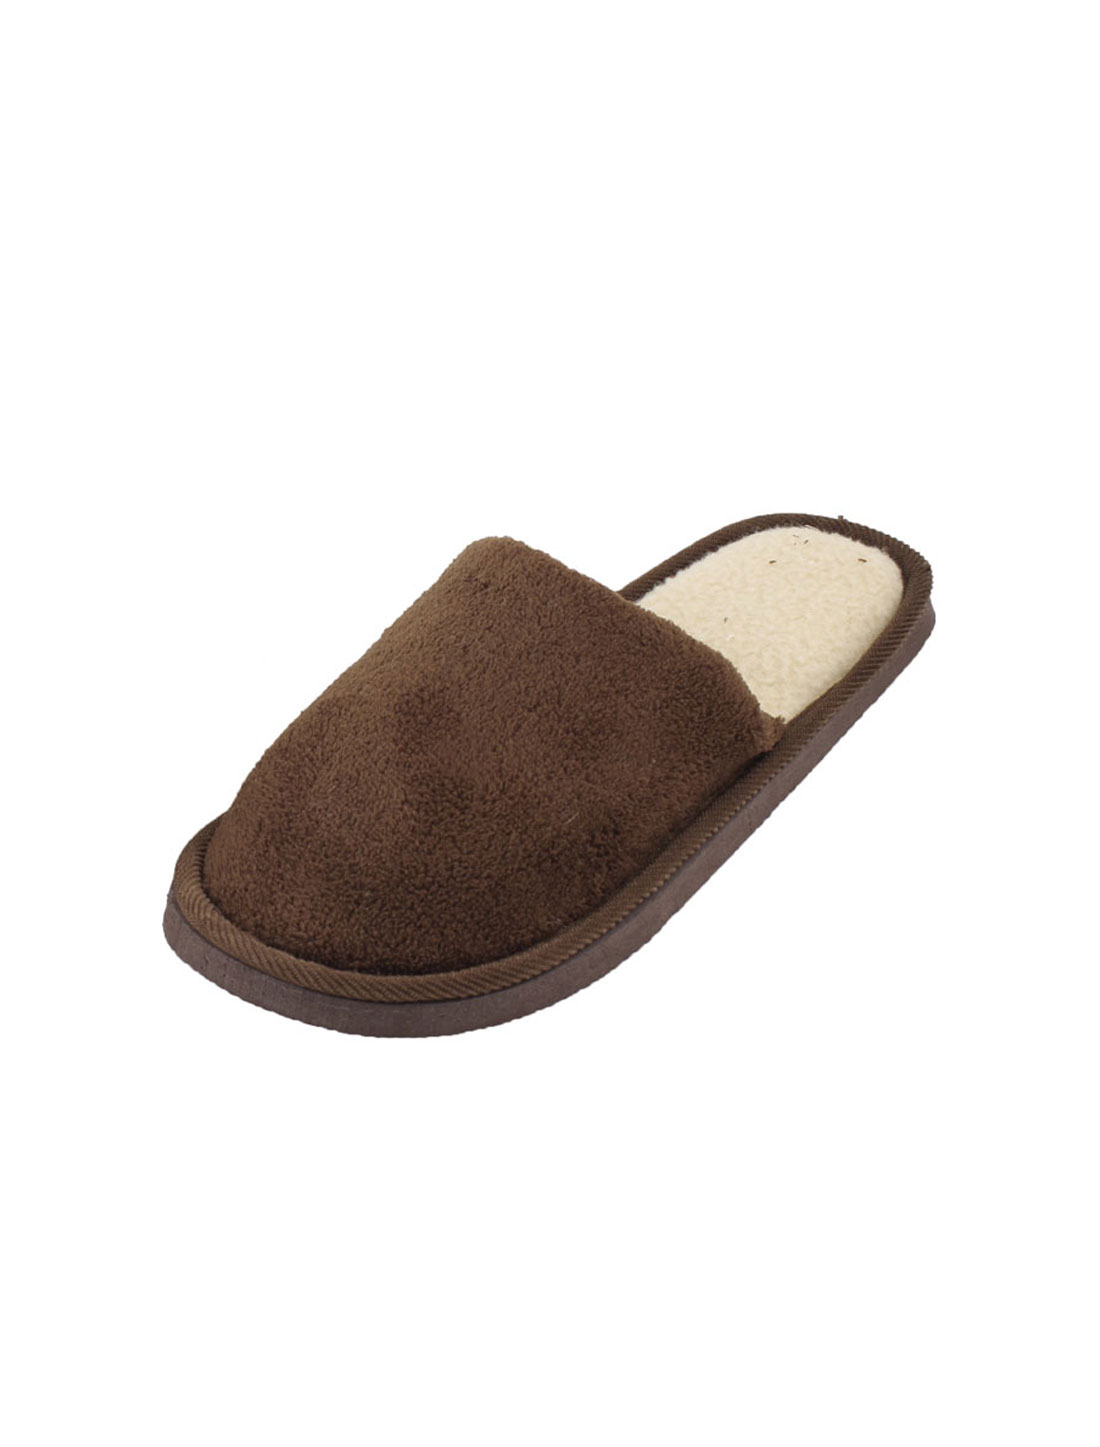 Man Coffee Color Slip On Fleece Lining Plush Warm Slippers Shoes US Size 9.5 Pair